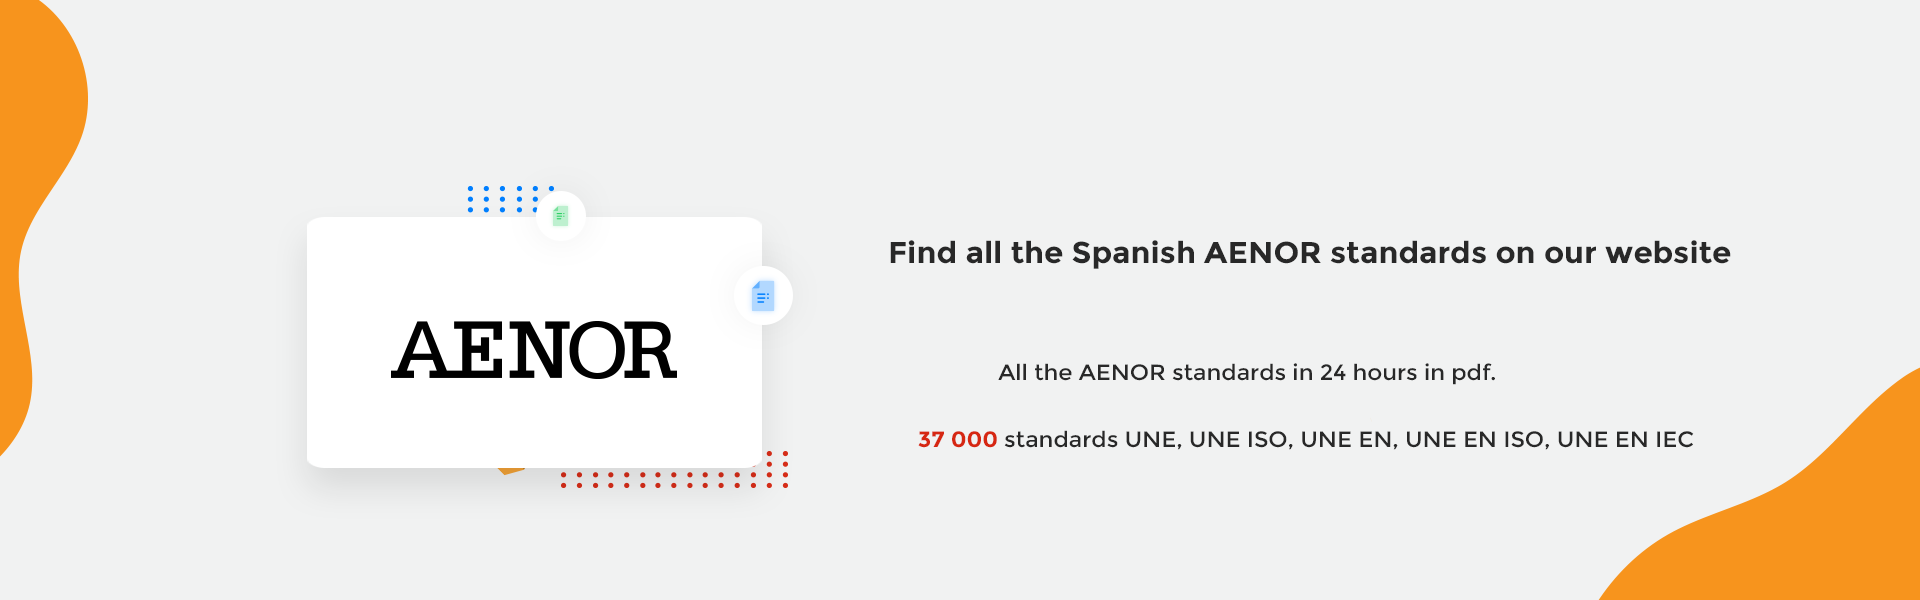 AENOR standards spanish UNE UNE EN ISO IEC